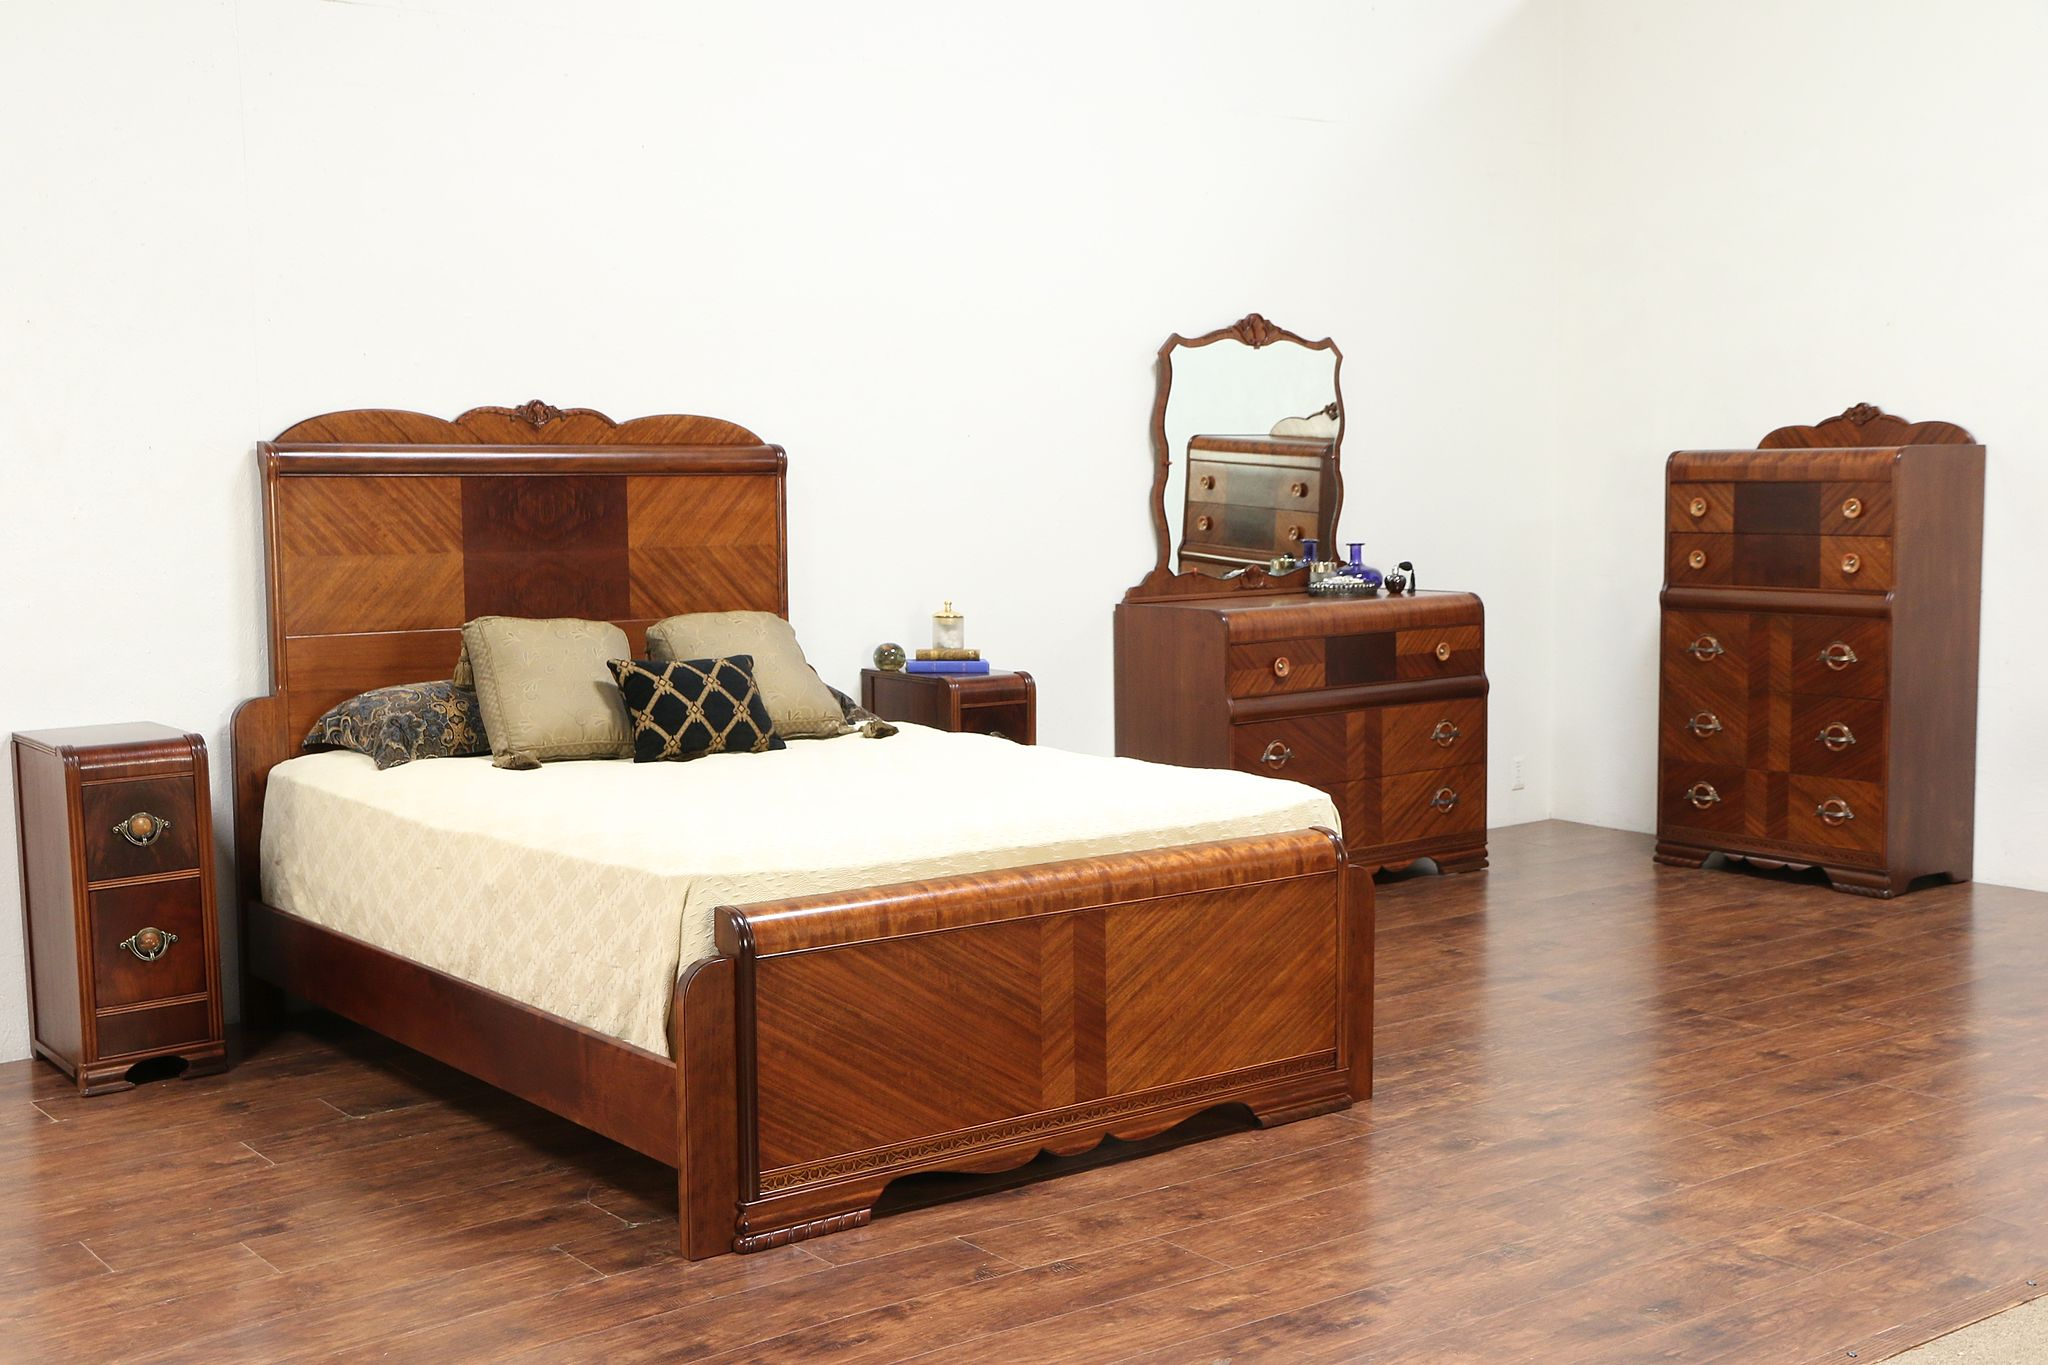 Sold Art Deco Waterfall Queen Size 5 Pc Vintage 1930 S Bedroom Set 29691 Harp Gallery Antiques Furniture